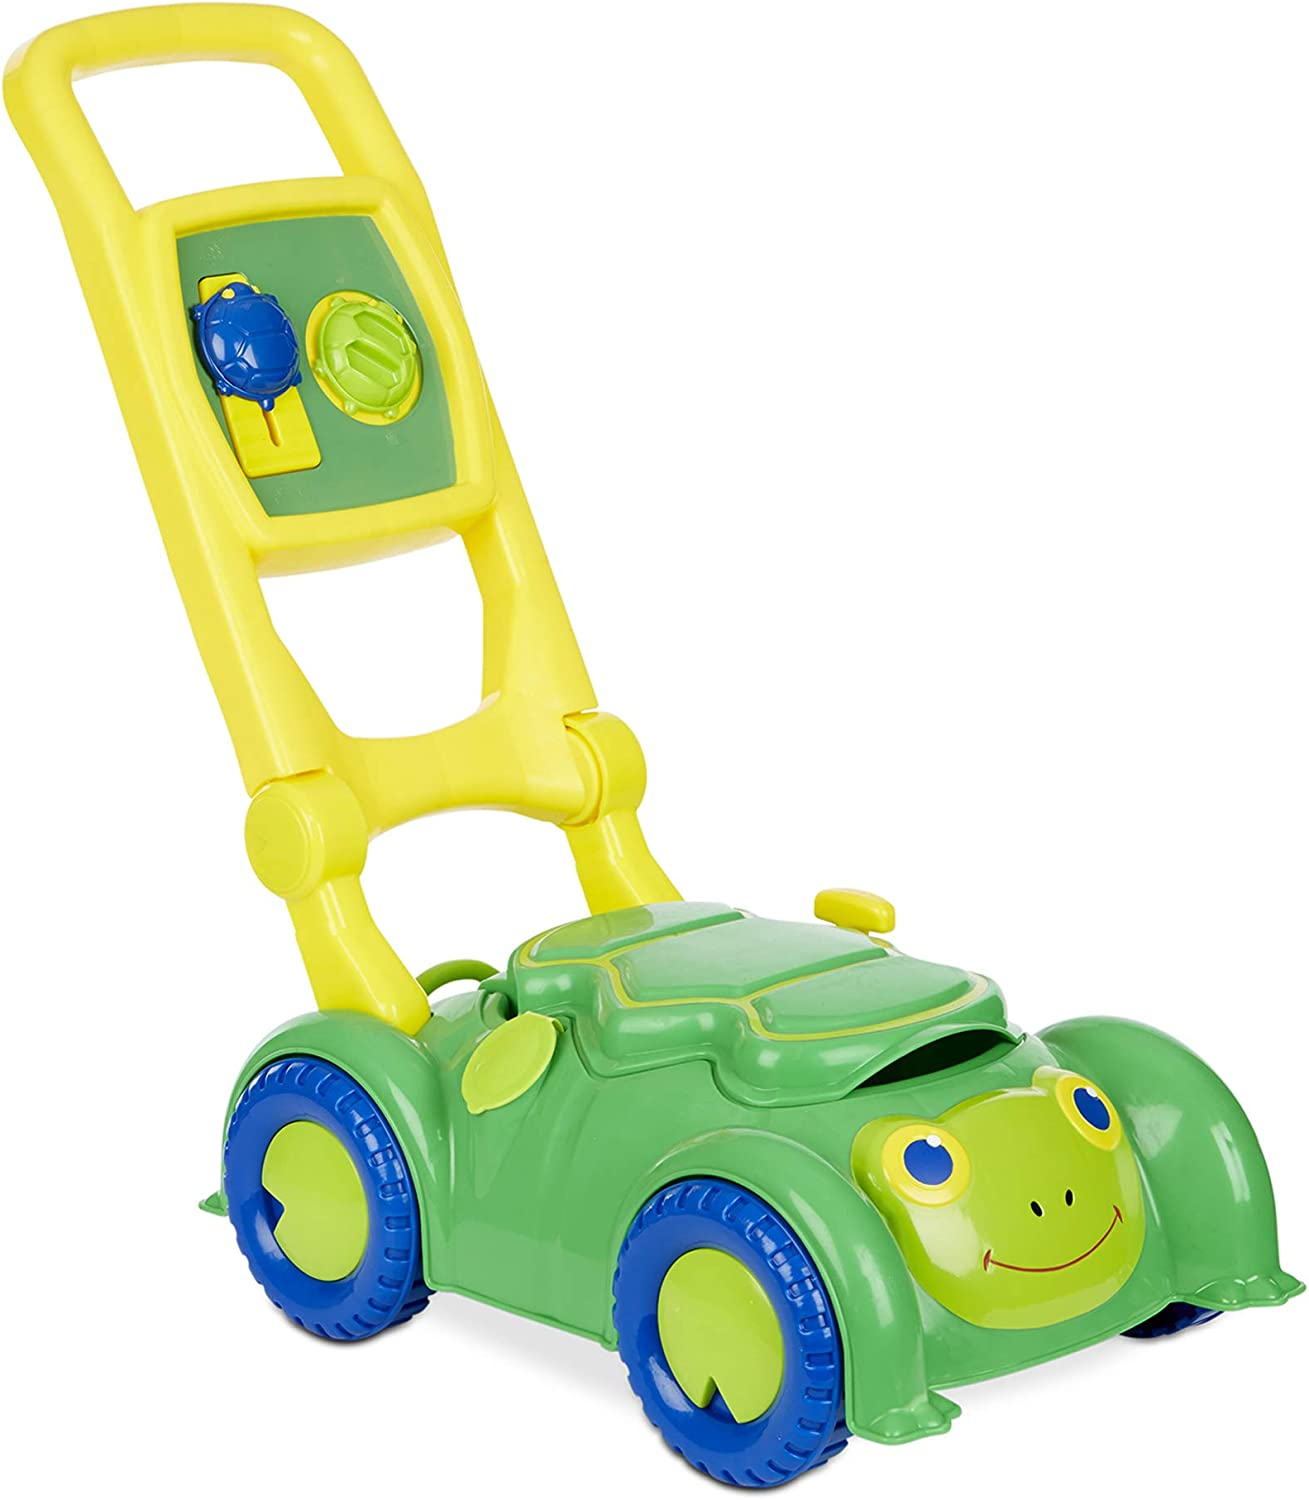 Melissa & Doug Sunny Patch Snappy Turtle Mower (Frustration-Free Packaging)